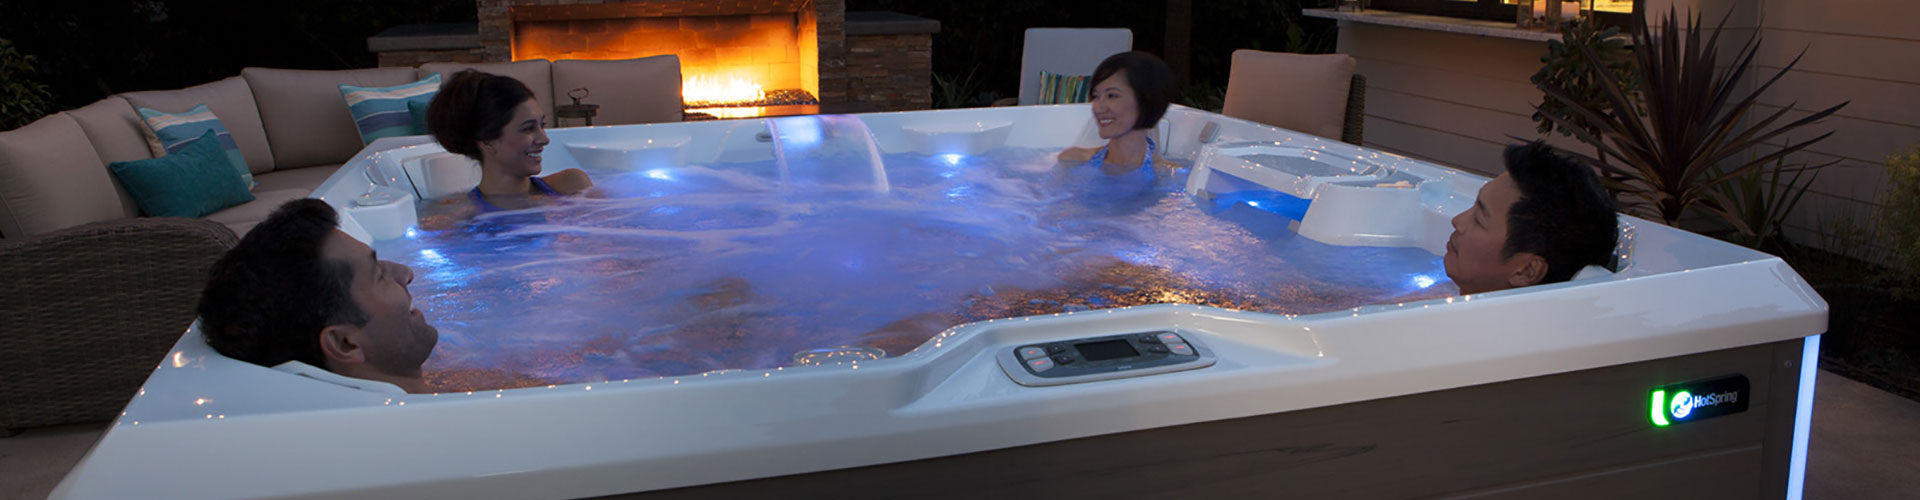 Discover the Best You, With a Spa at Home, Hot Tub Sale Brookfield